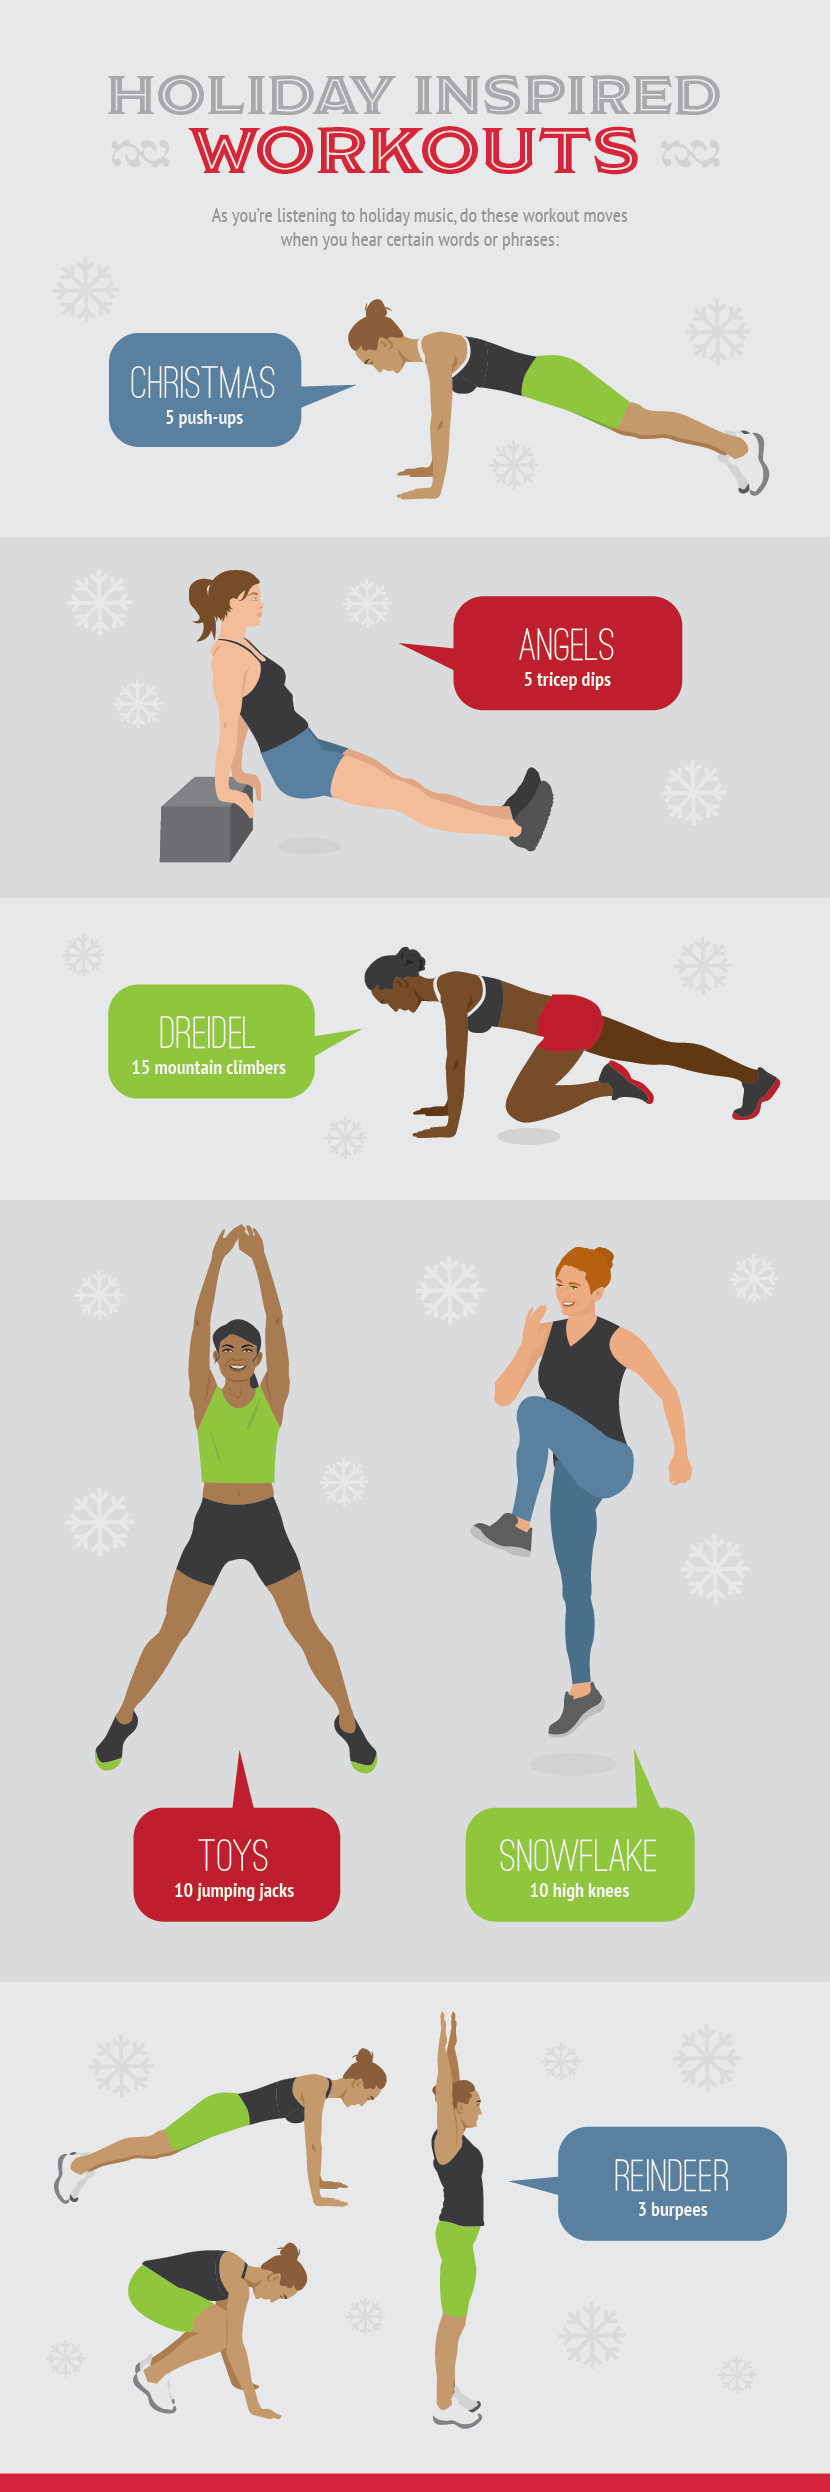 Holiday-Inspired Workouts - Hectic Holiday Guide to Keeping Your Health Goals